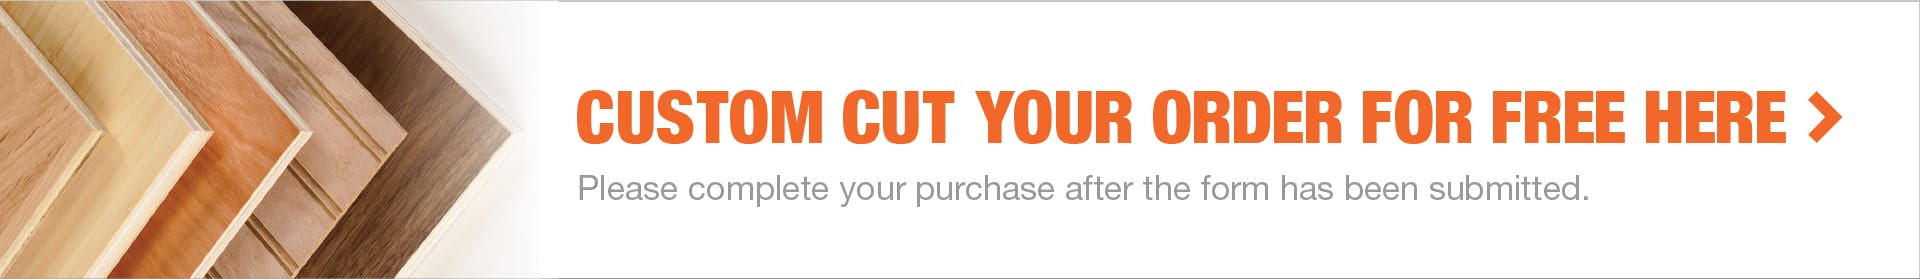 Custom Cut Your Order for Free Here